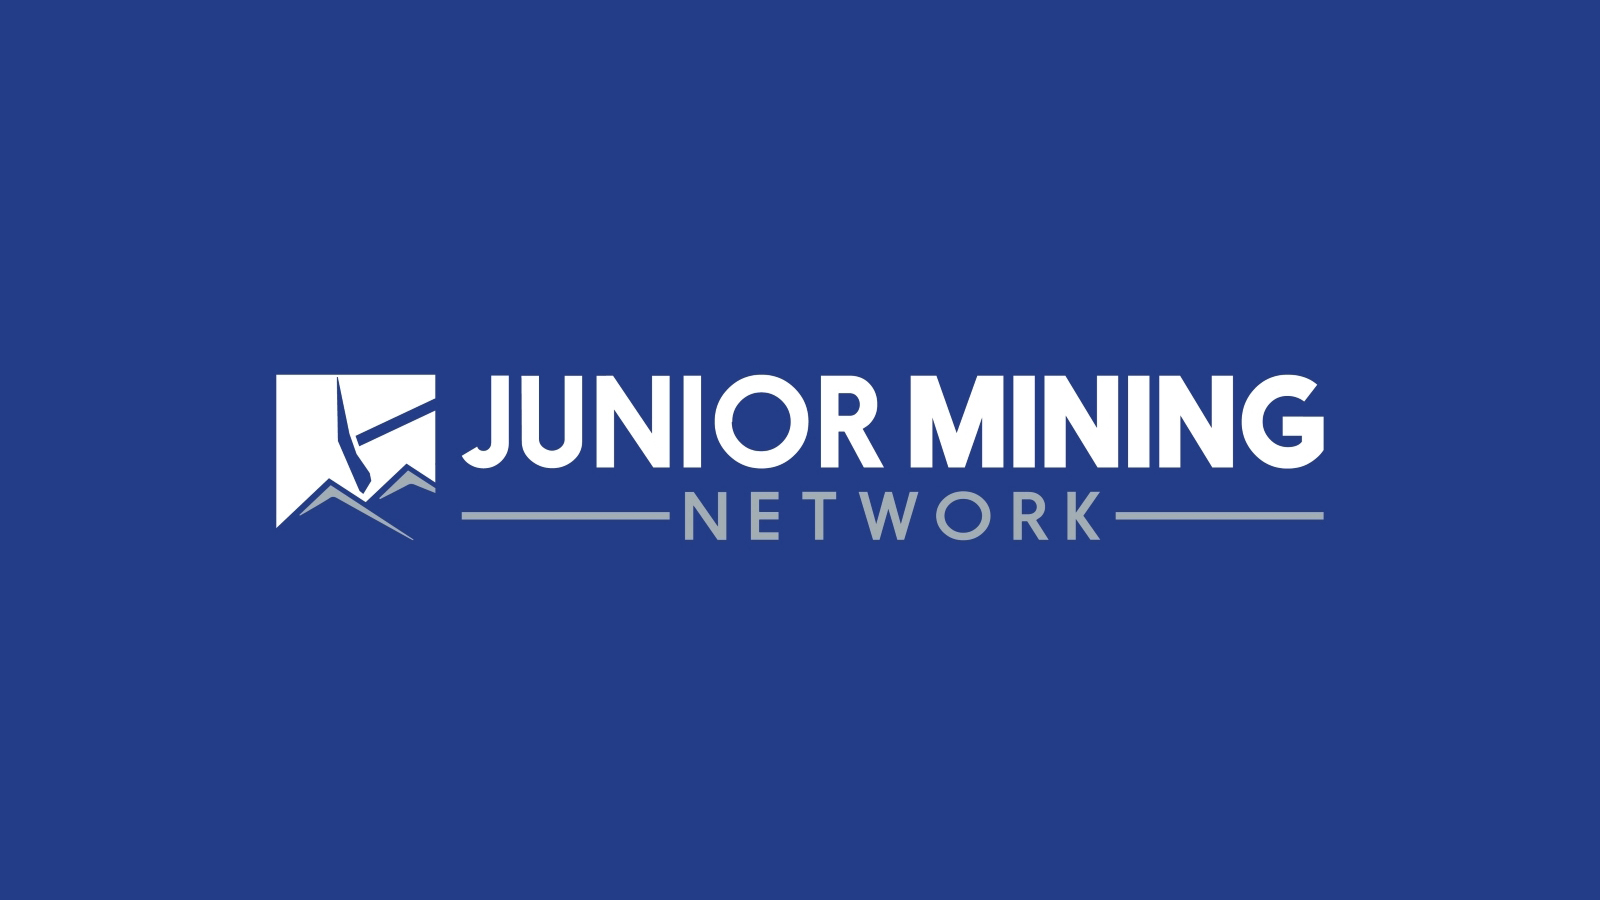 Cannot view this image? Visit: https://www.juniorminingnetwork.com/images/news/newsfile/32201_dni3.jpg